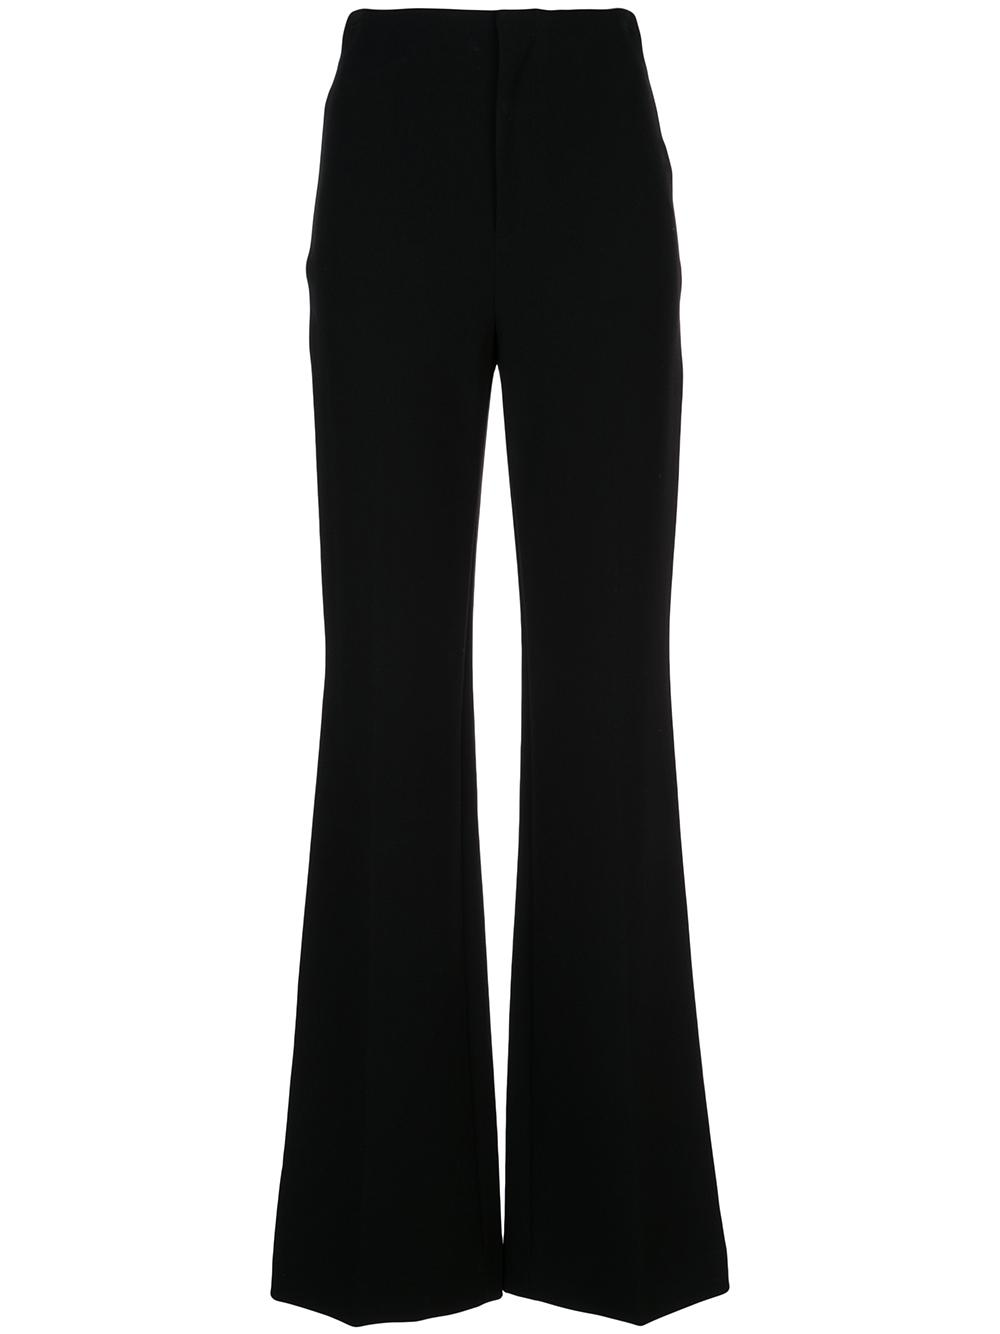 Lorinda Super High Waisted Pant